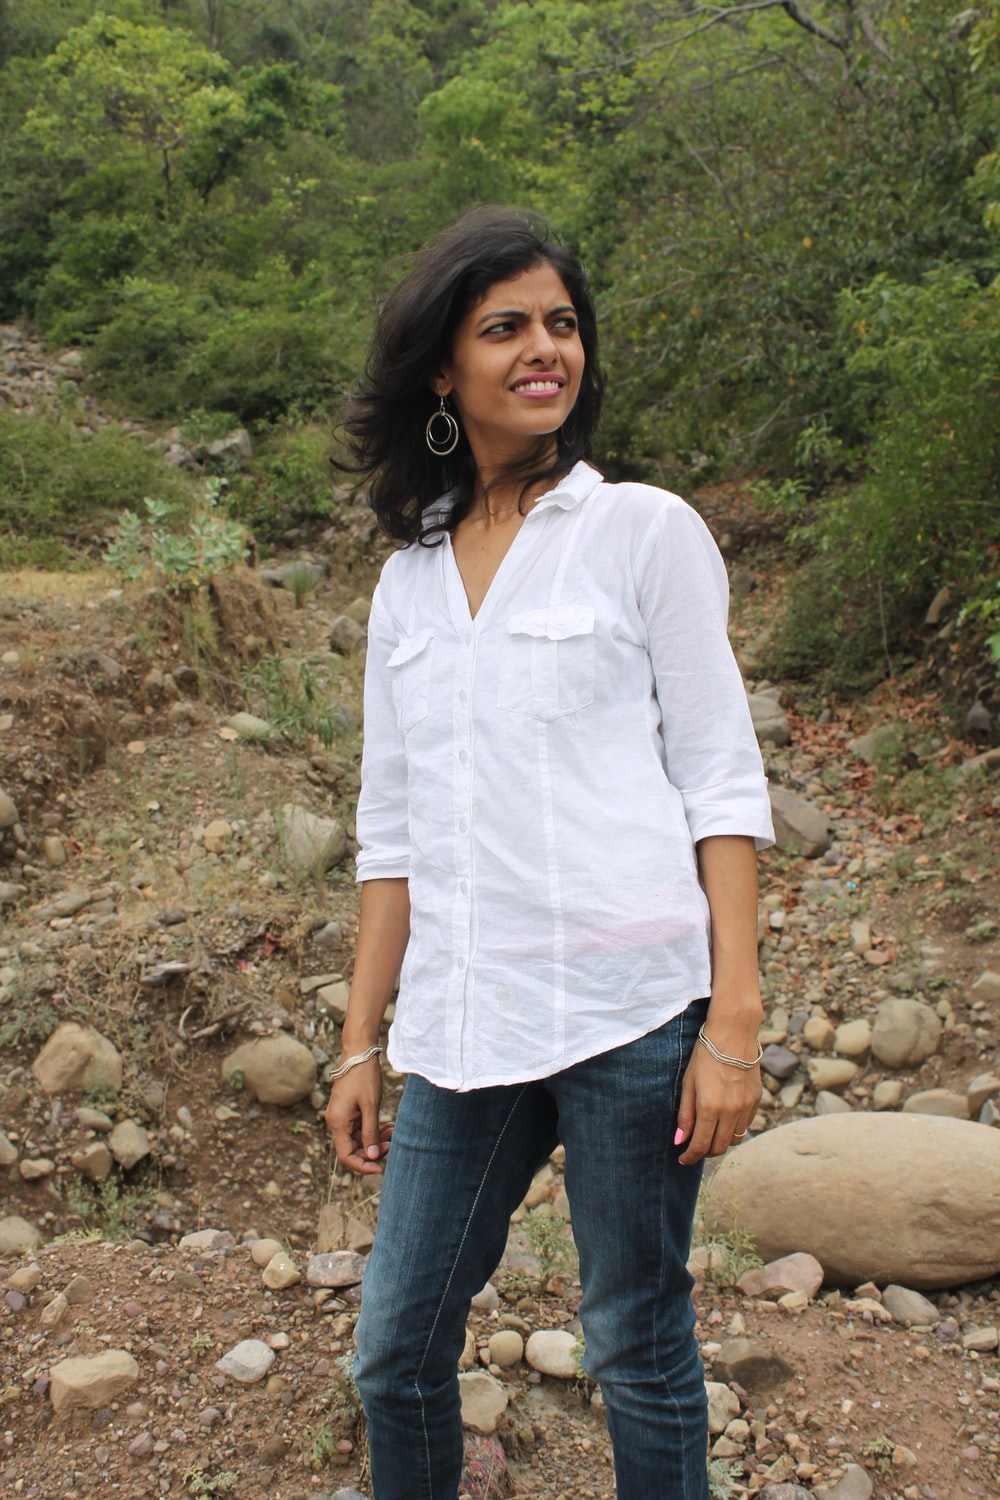 woman in white button up shirt and blue denim jeans standing on rocky ground during daytime